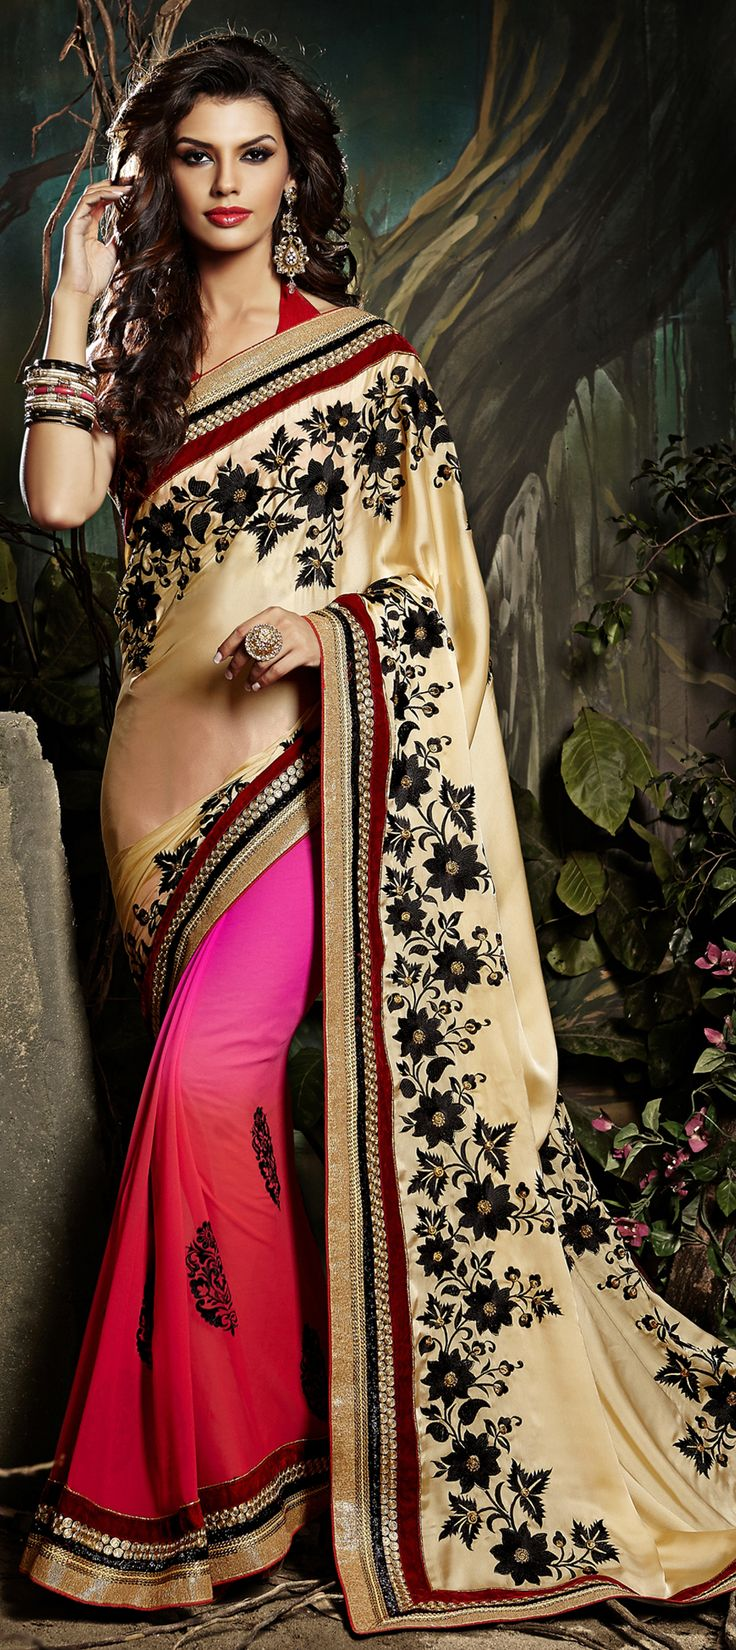 156004: Let the Flowers fall on your #saree in a way as if painted. Order this unique style now!  #Partywear #IndianFashion